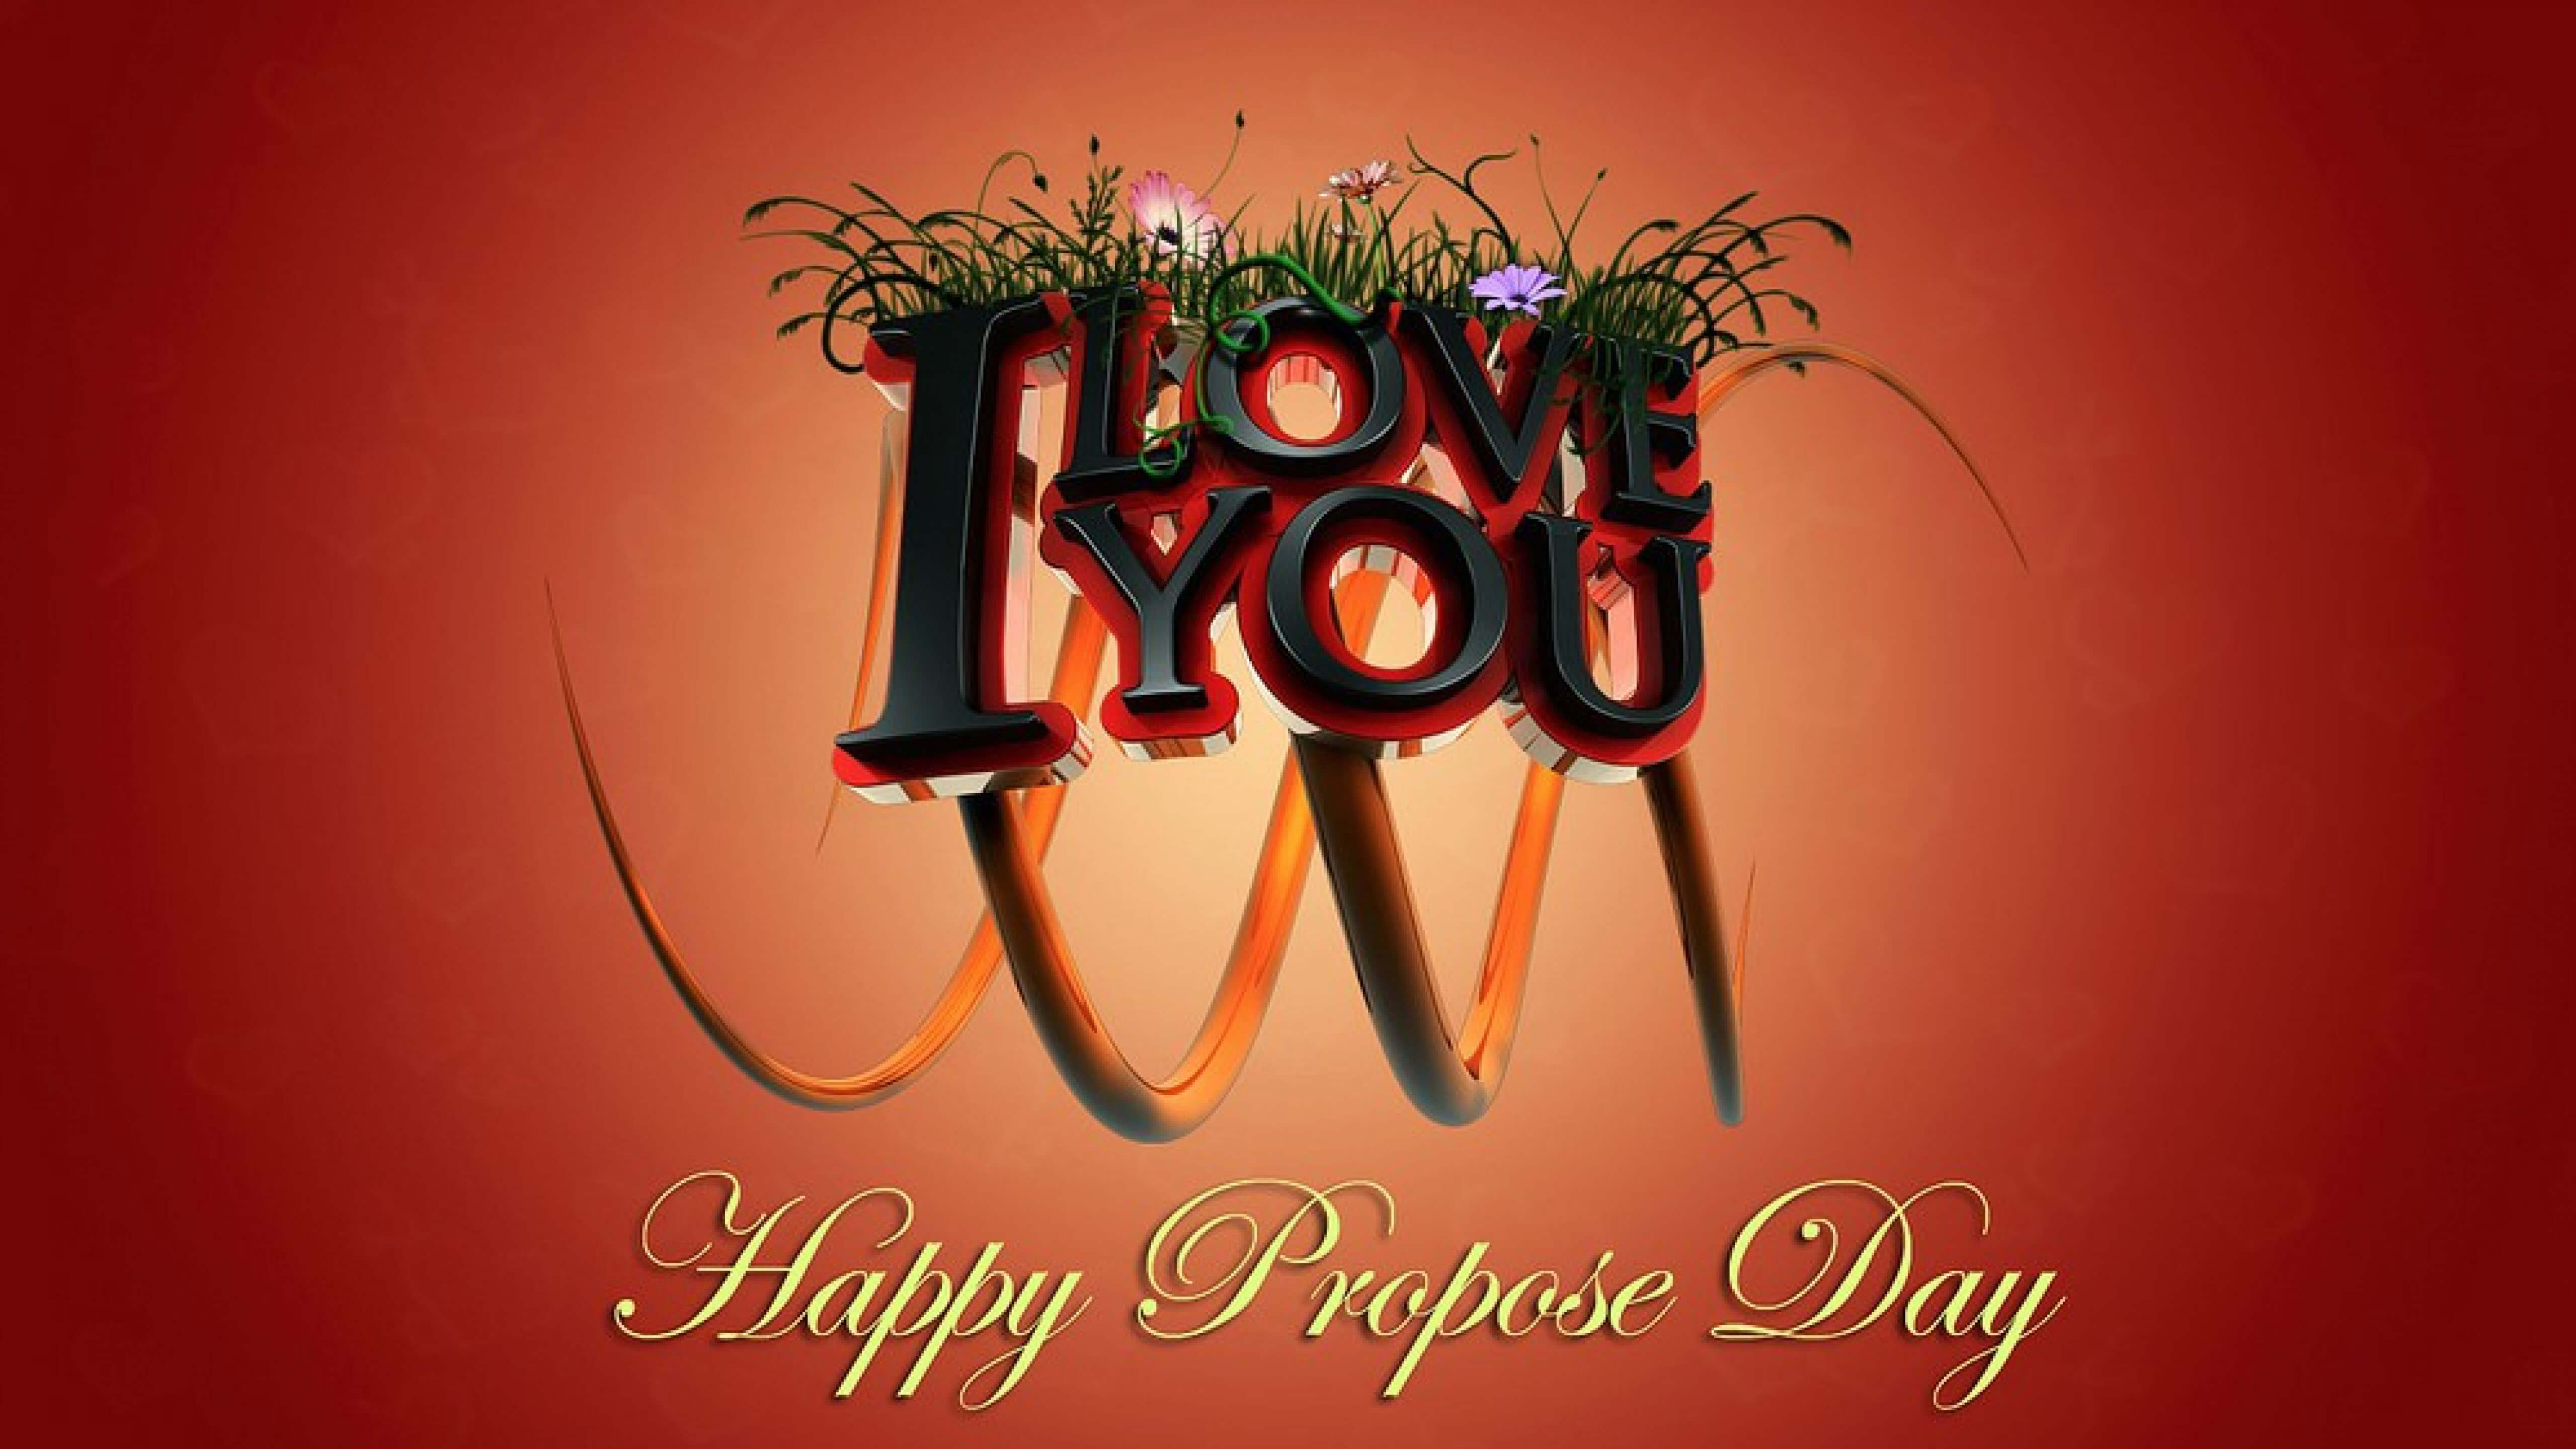 happy propose day love you february 8th background large hd wallpaper